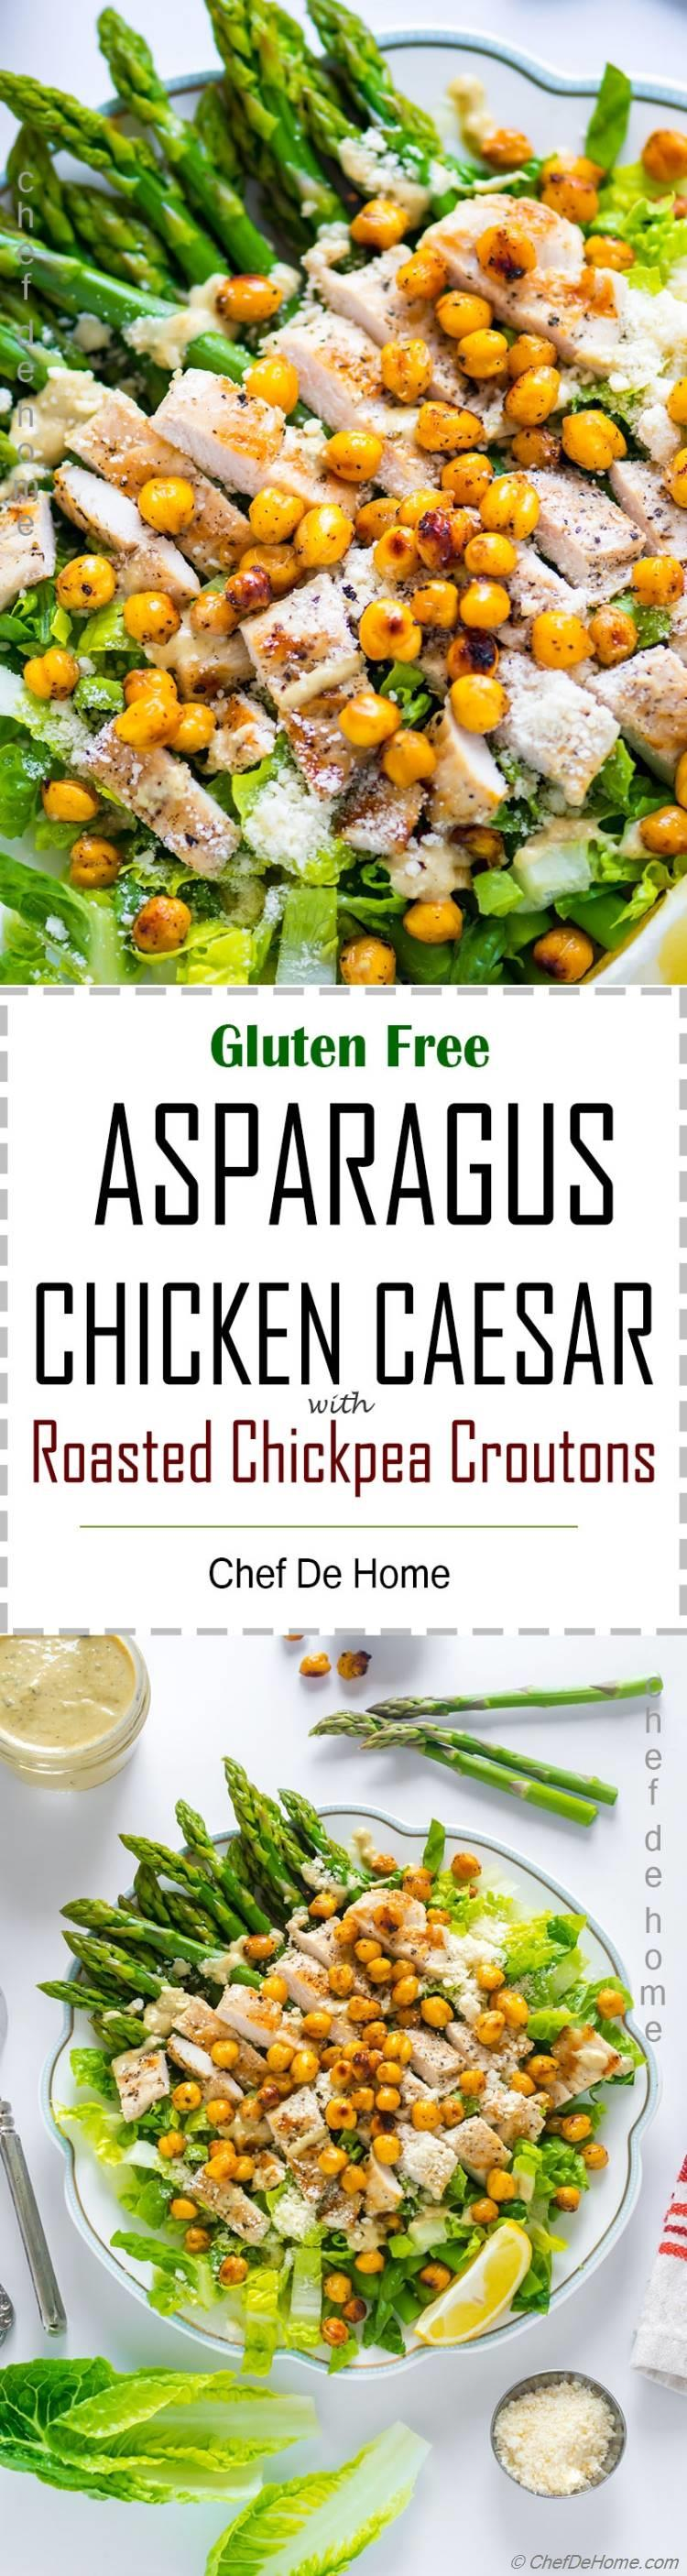 Caesar Salad with asparagus grilled chicken and roasted chickpeas croutons